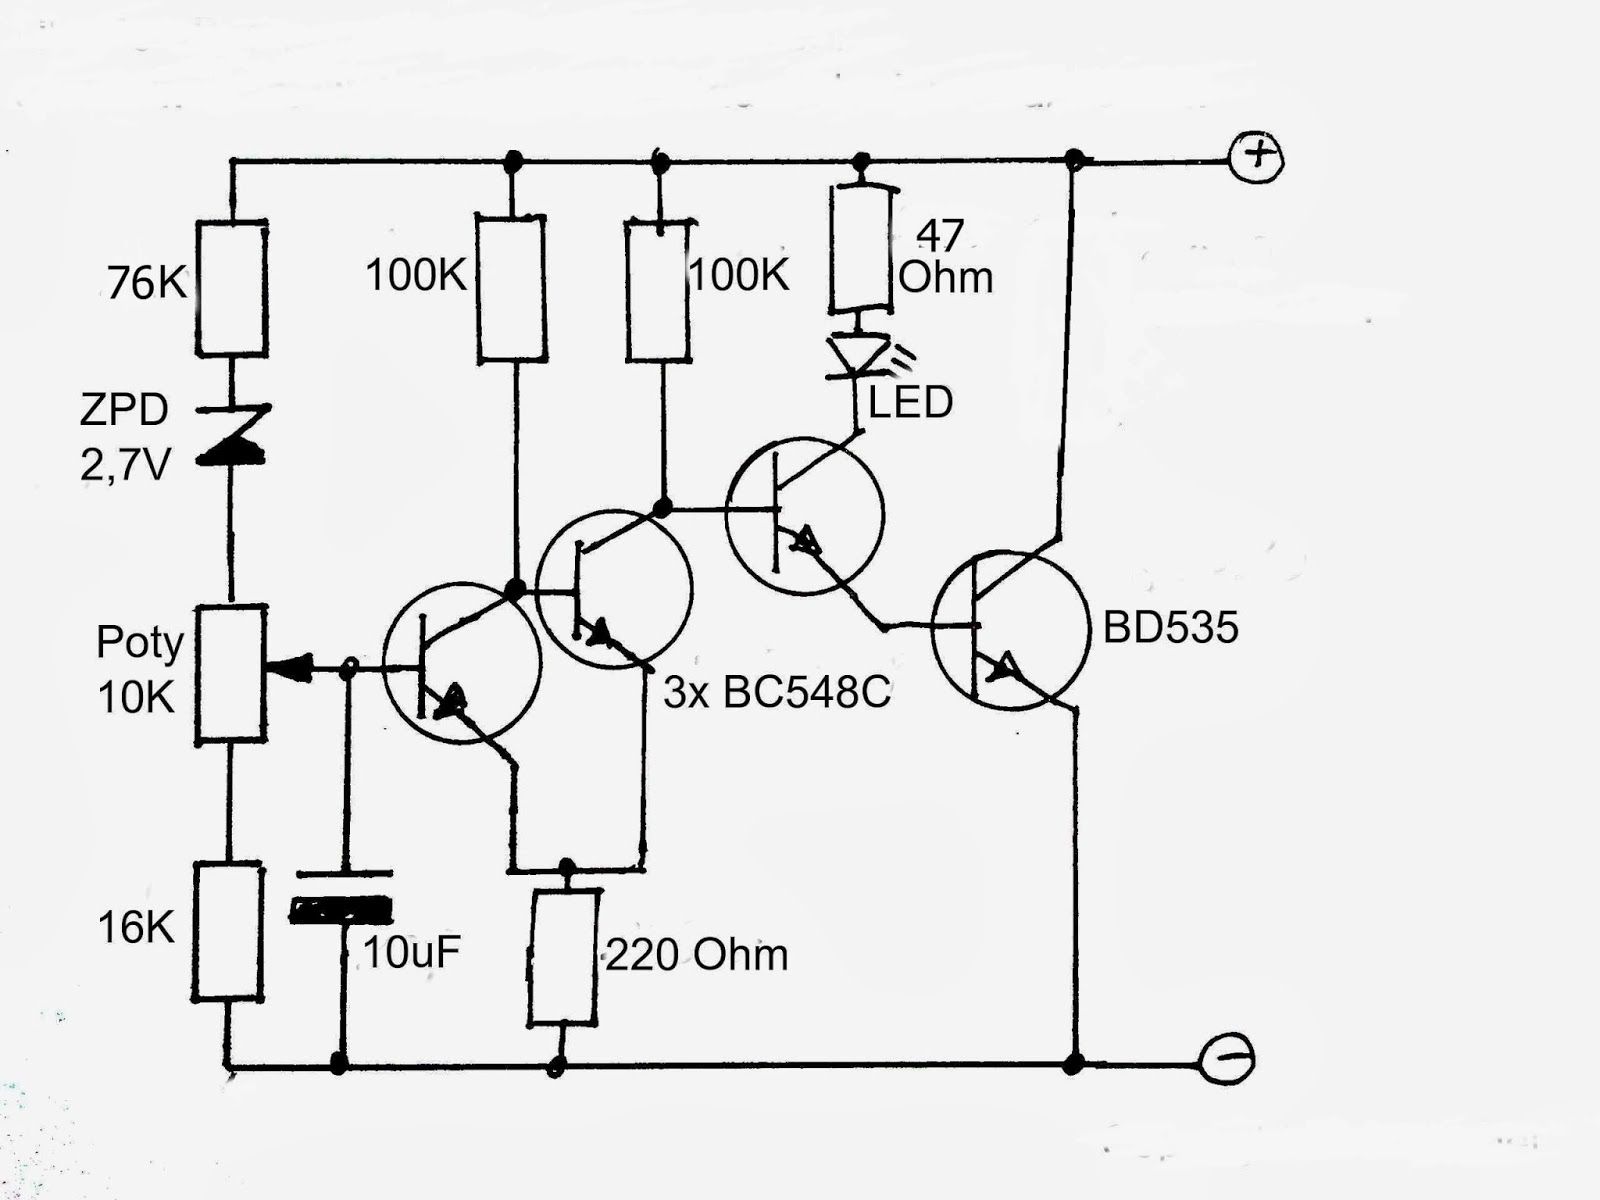 bms wiring diagram ebike telecaster 3 pickup lithium balancer deutsch